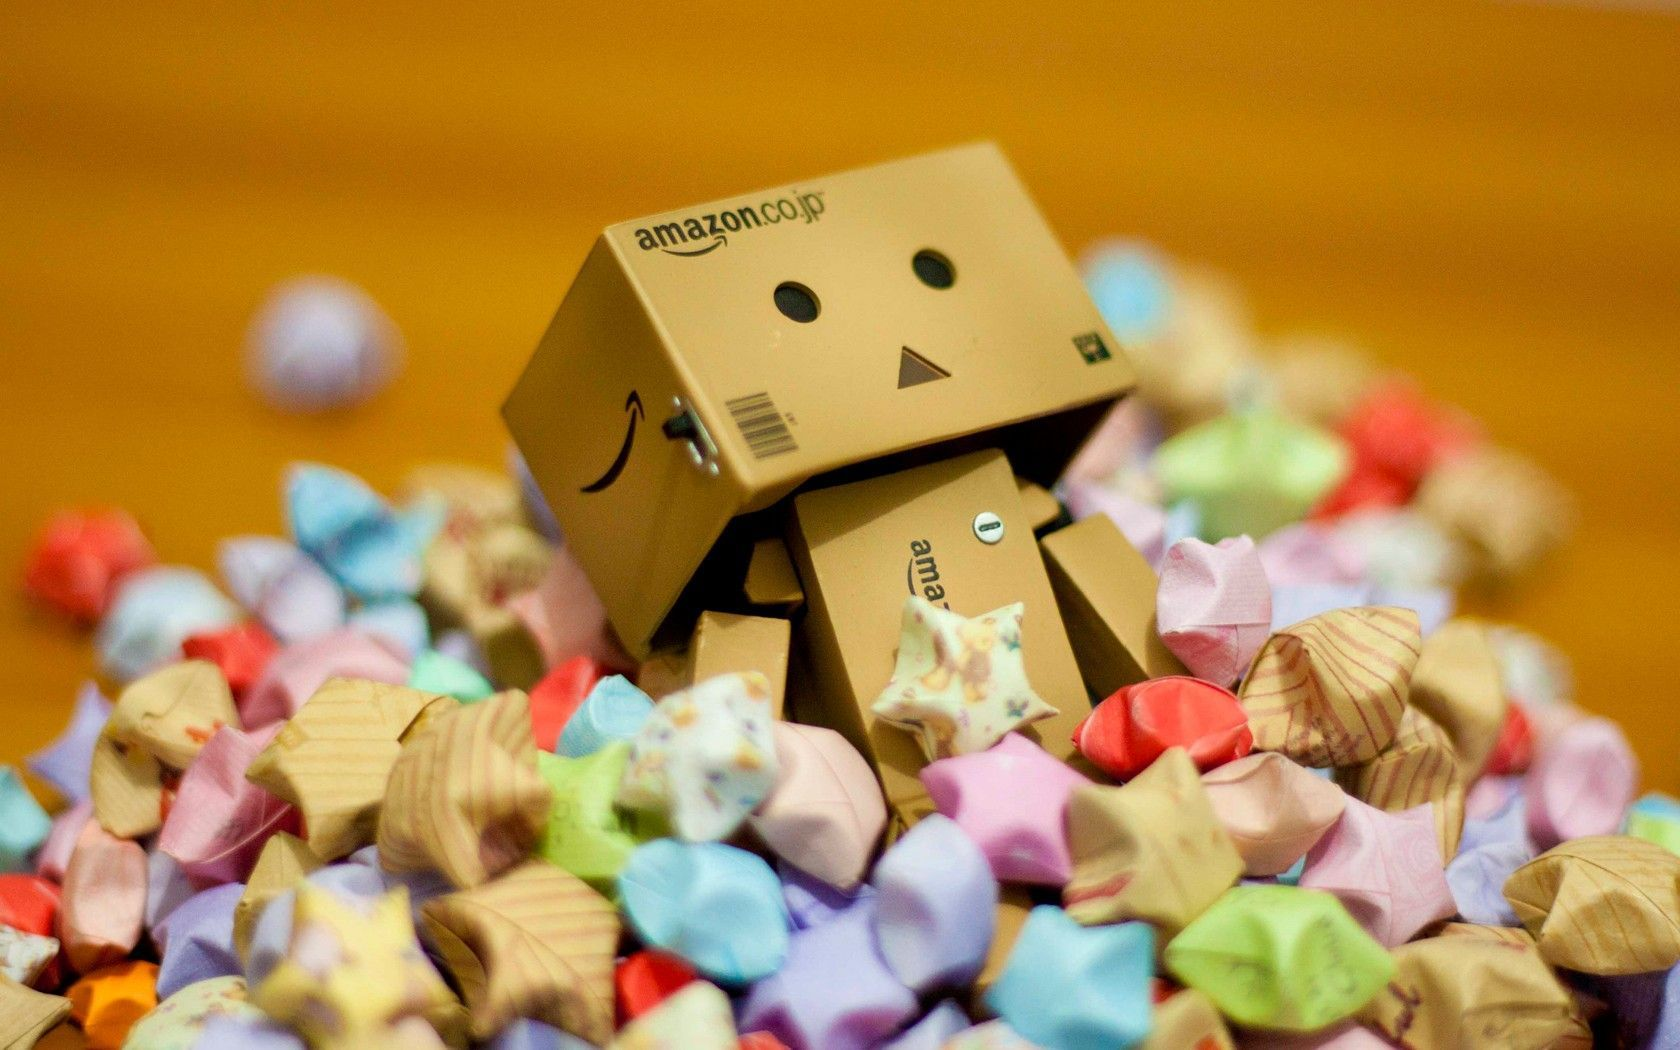 Cute Candy And Danbo Wallpaper PC 1135 Wallpaper Wallpaper